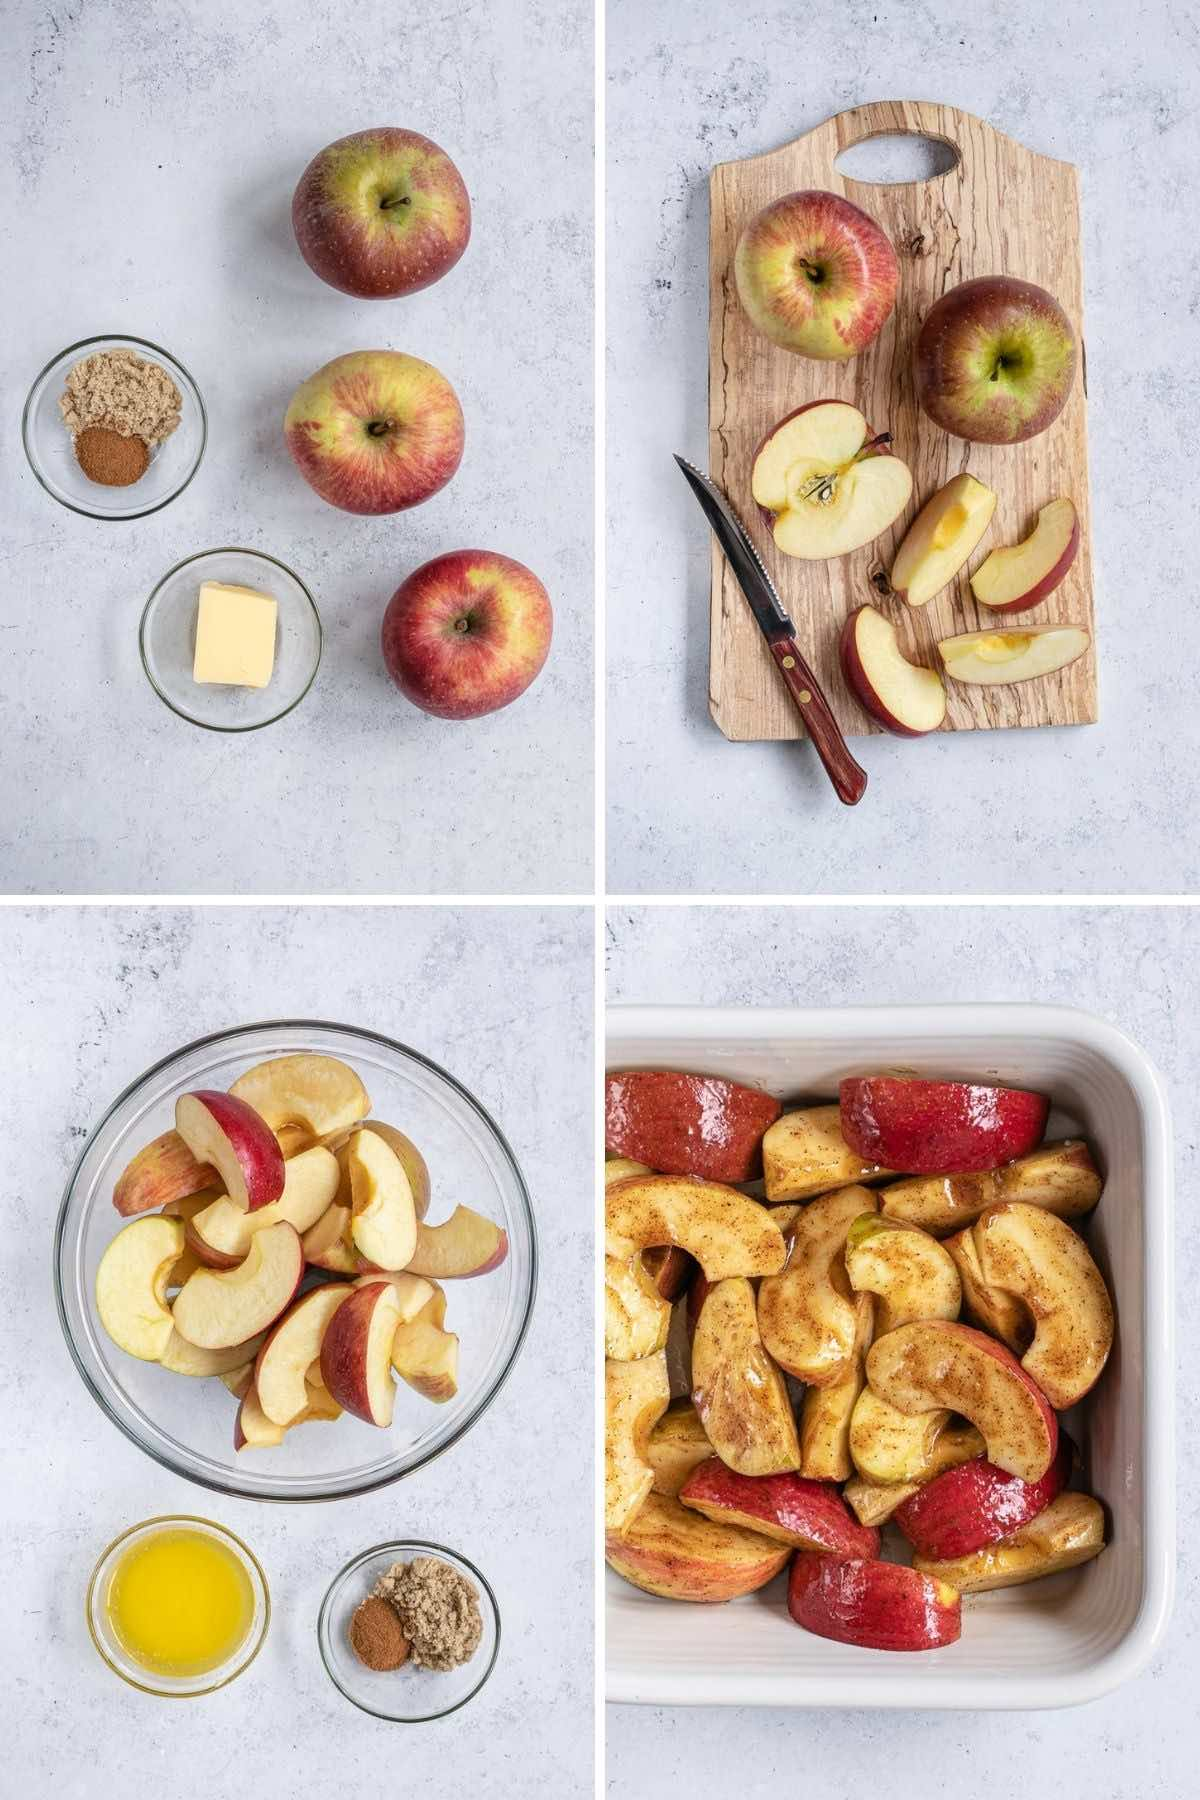 Healthy Baked Sliced Apples Collage